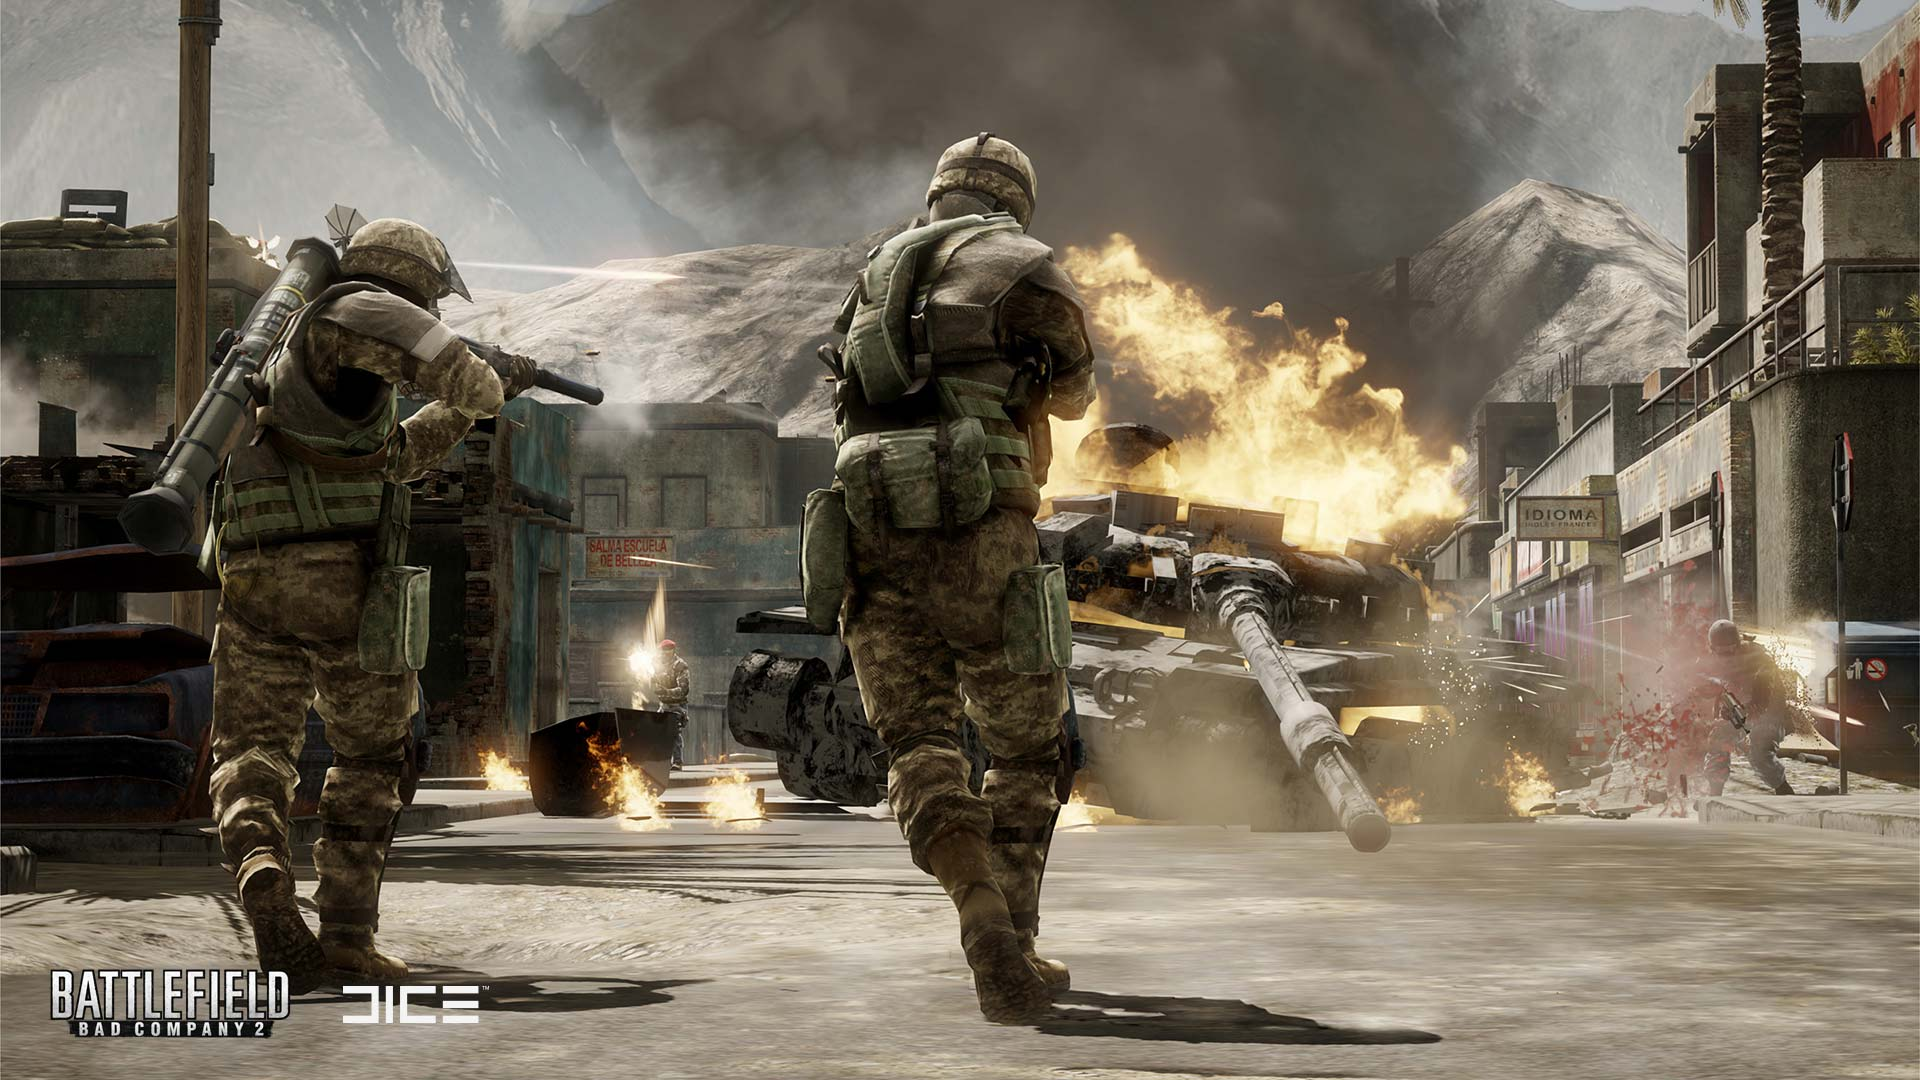 Battlefield: bad company 2 delivers destruction, vehicular warfare, squad play and open world environments in an action game.